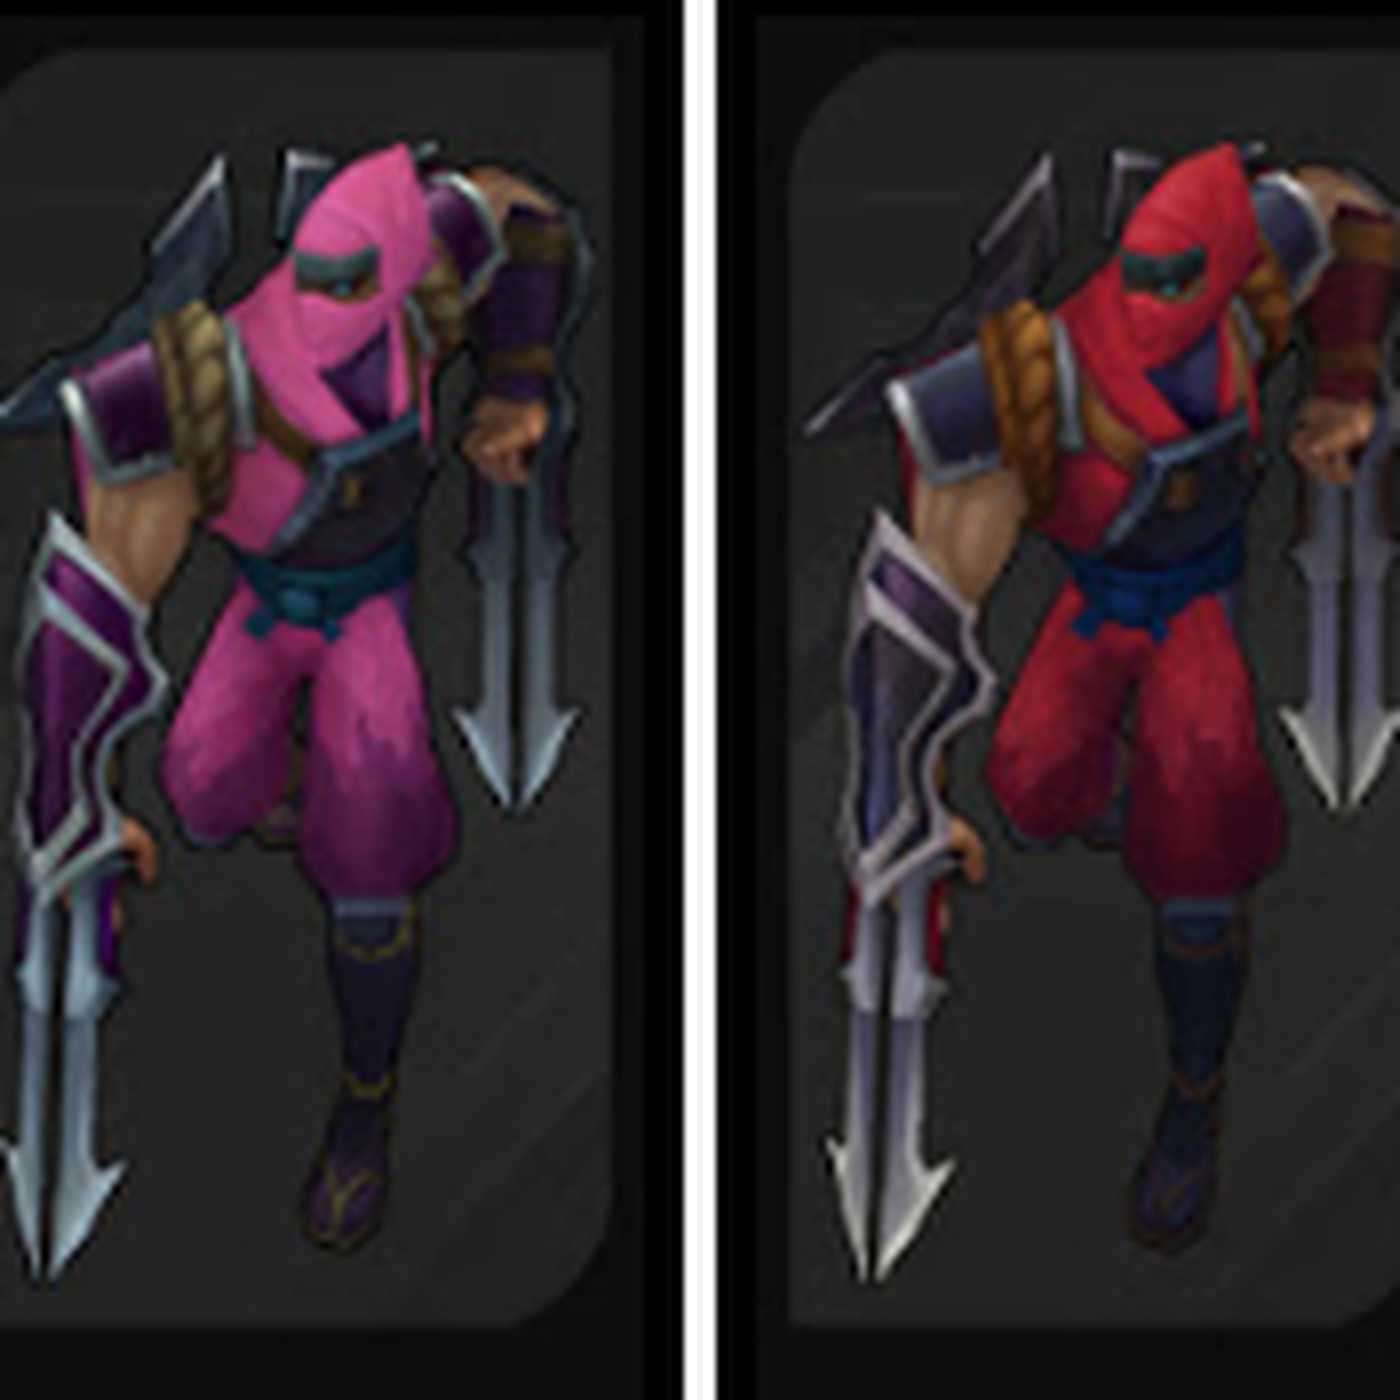 New chromas are coming to League, and you'll be able to buy them